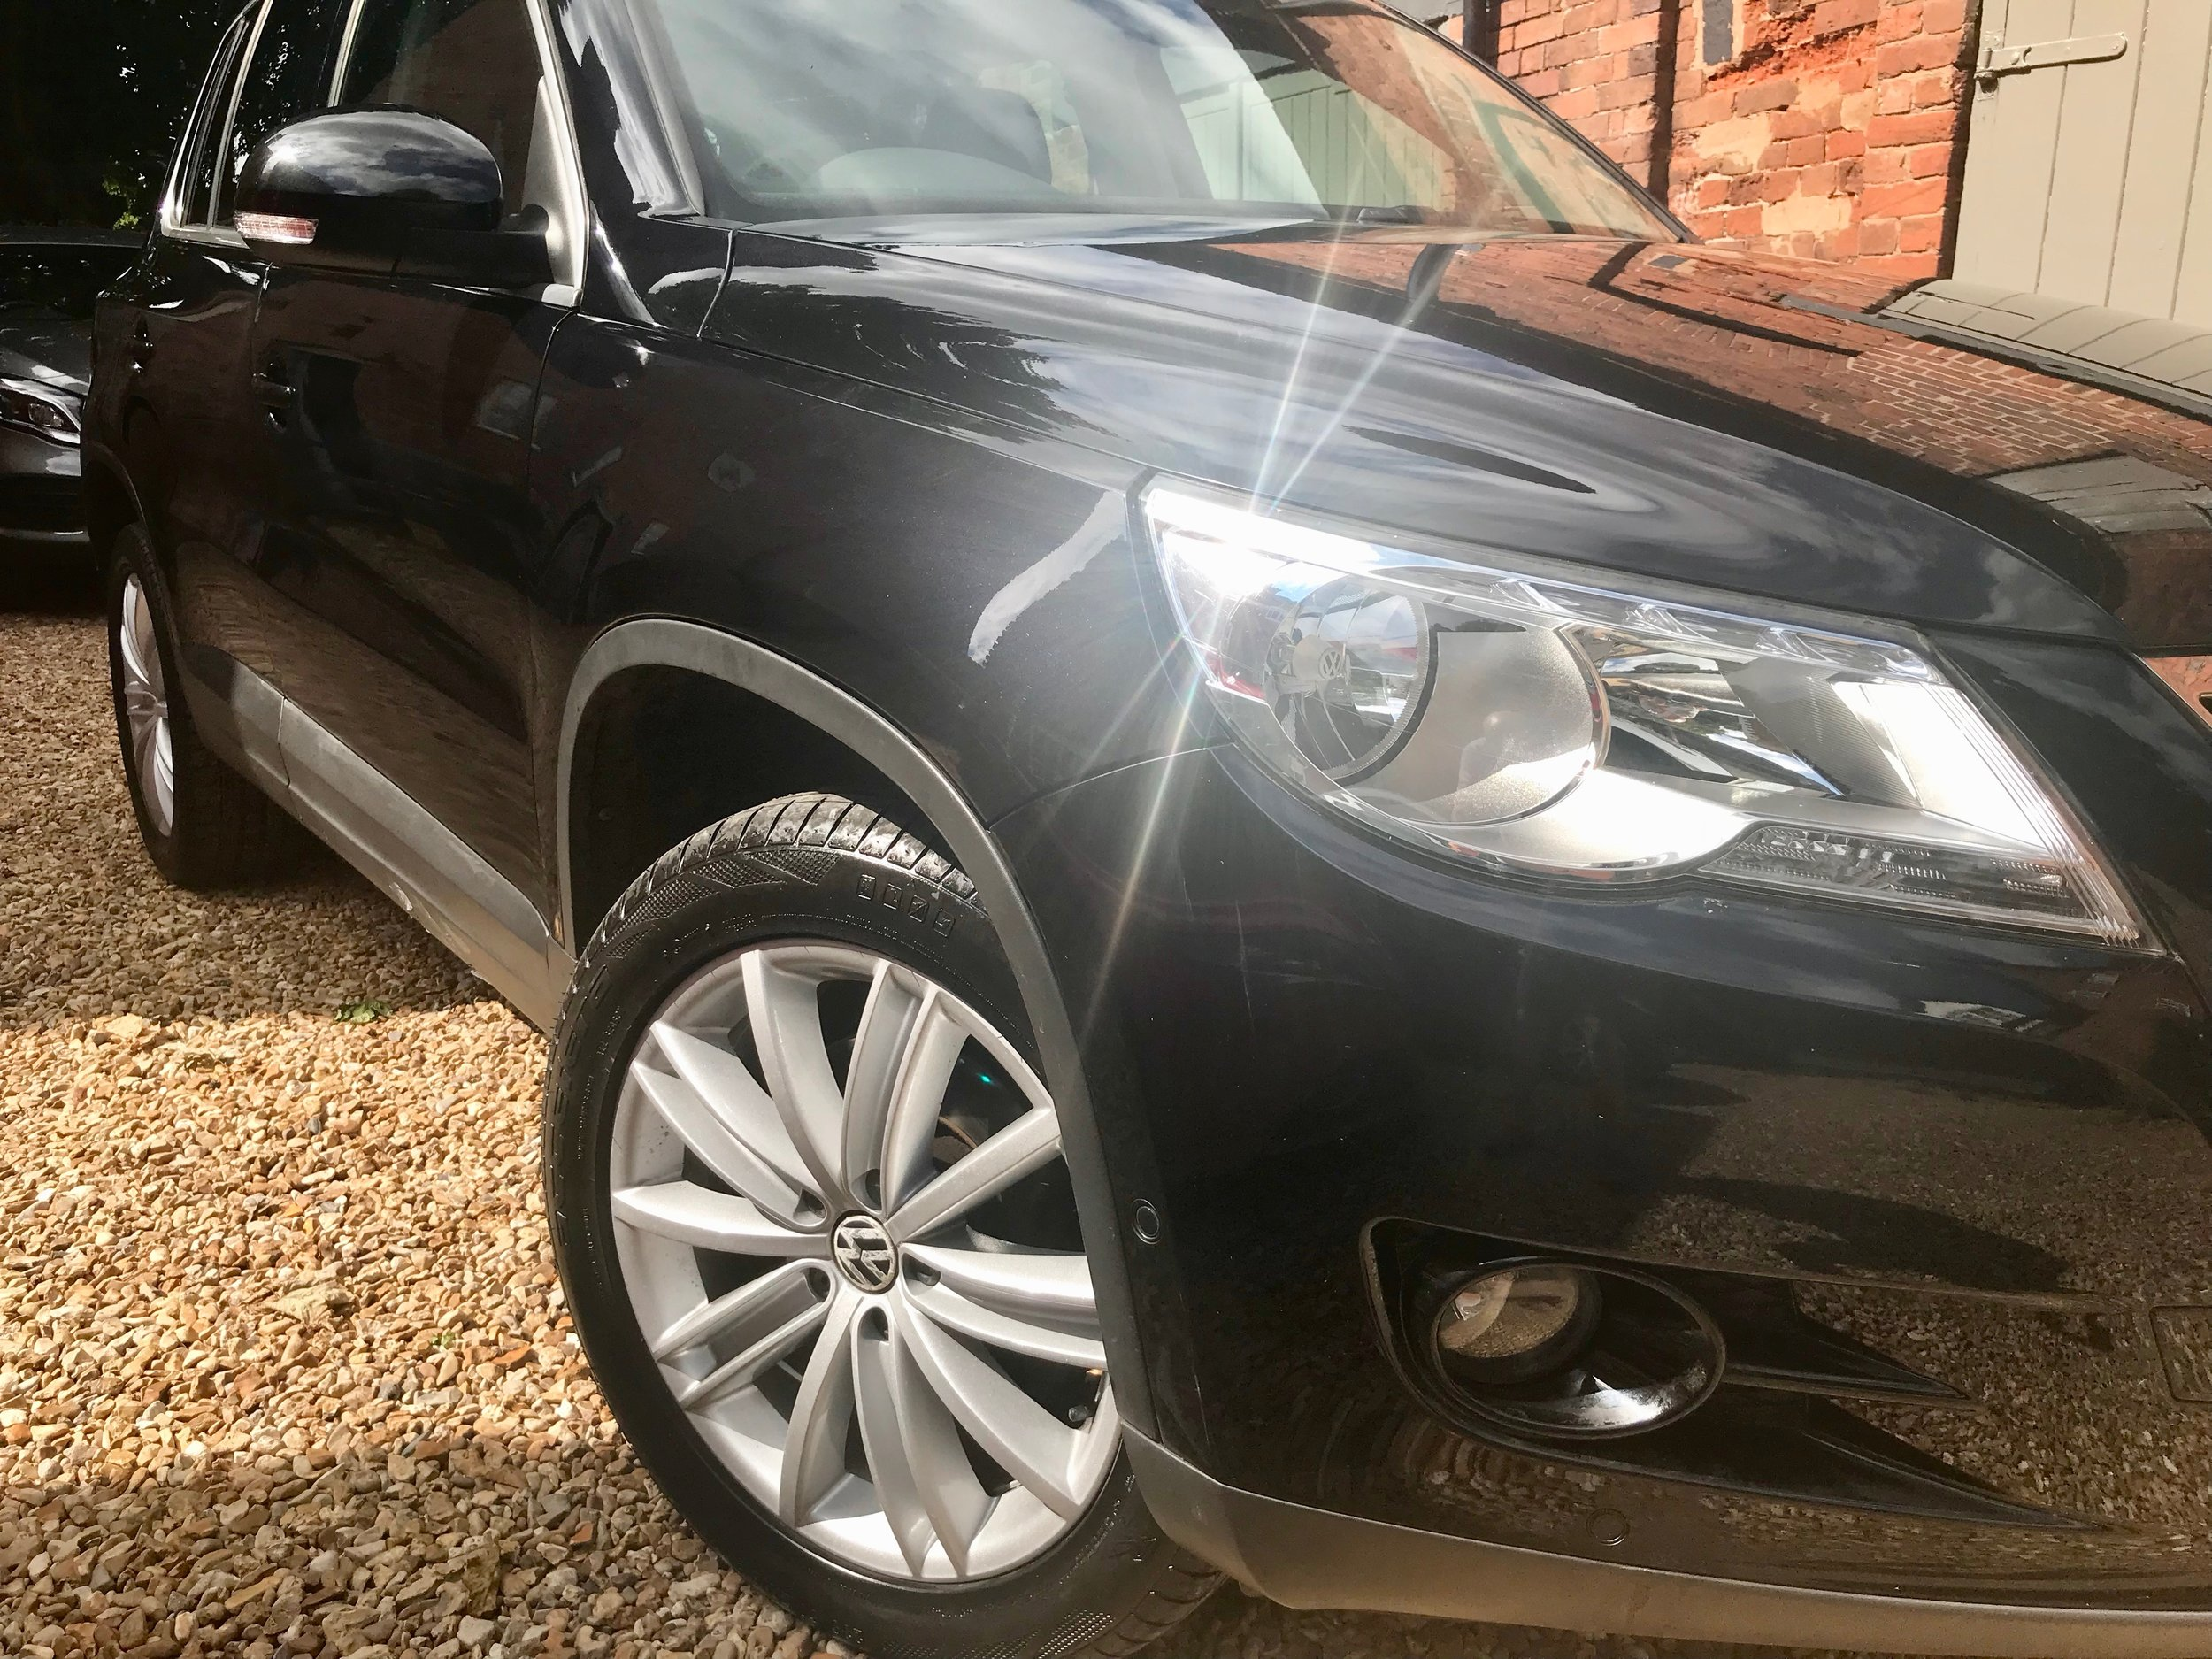 volkswagen-tiguan-4motion-used-car-forsale-regalmotion42.jpeg